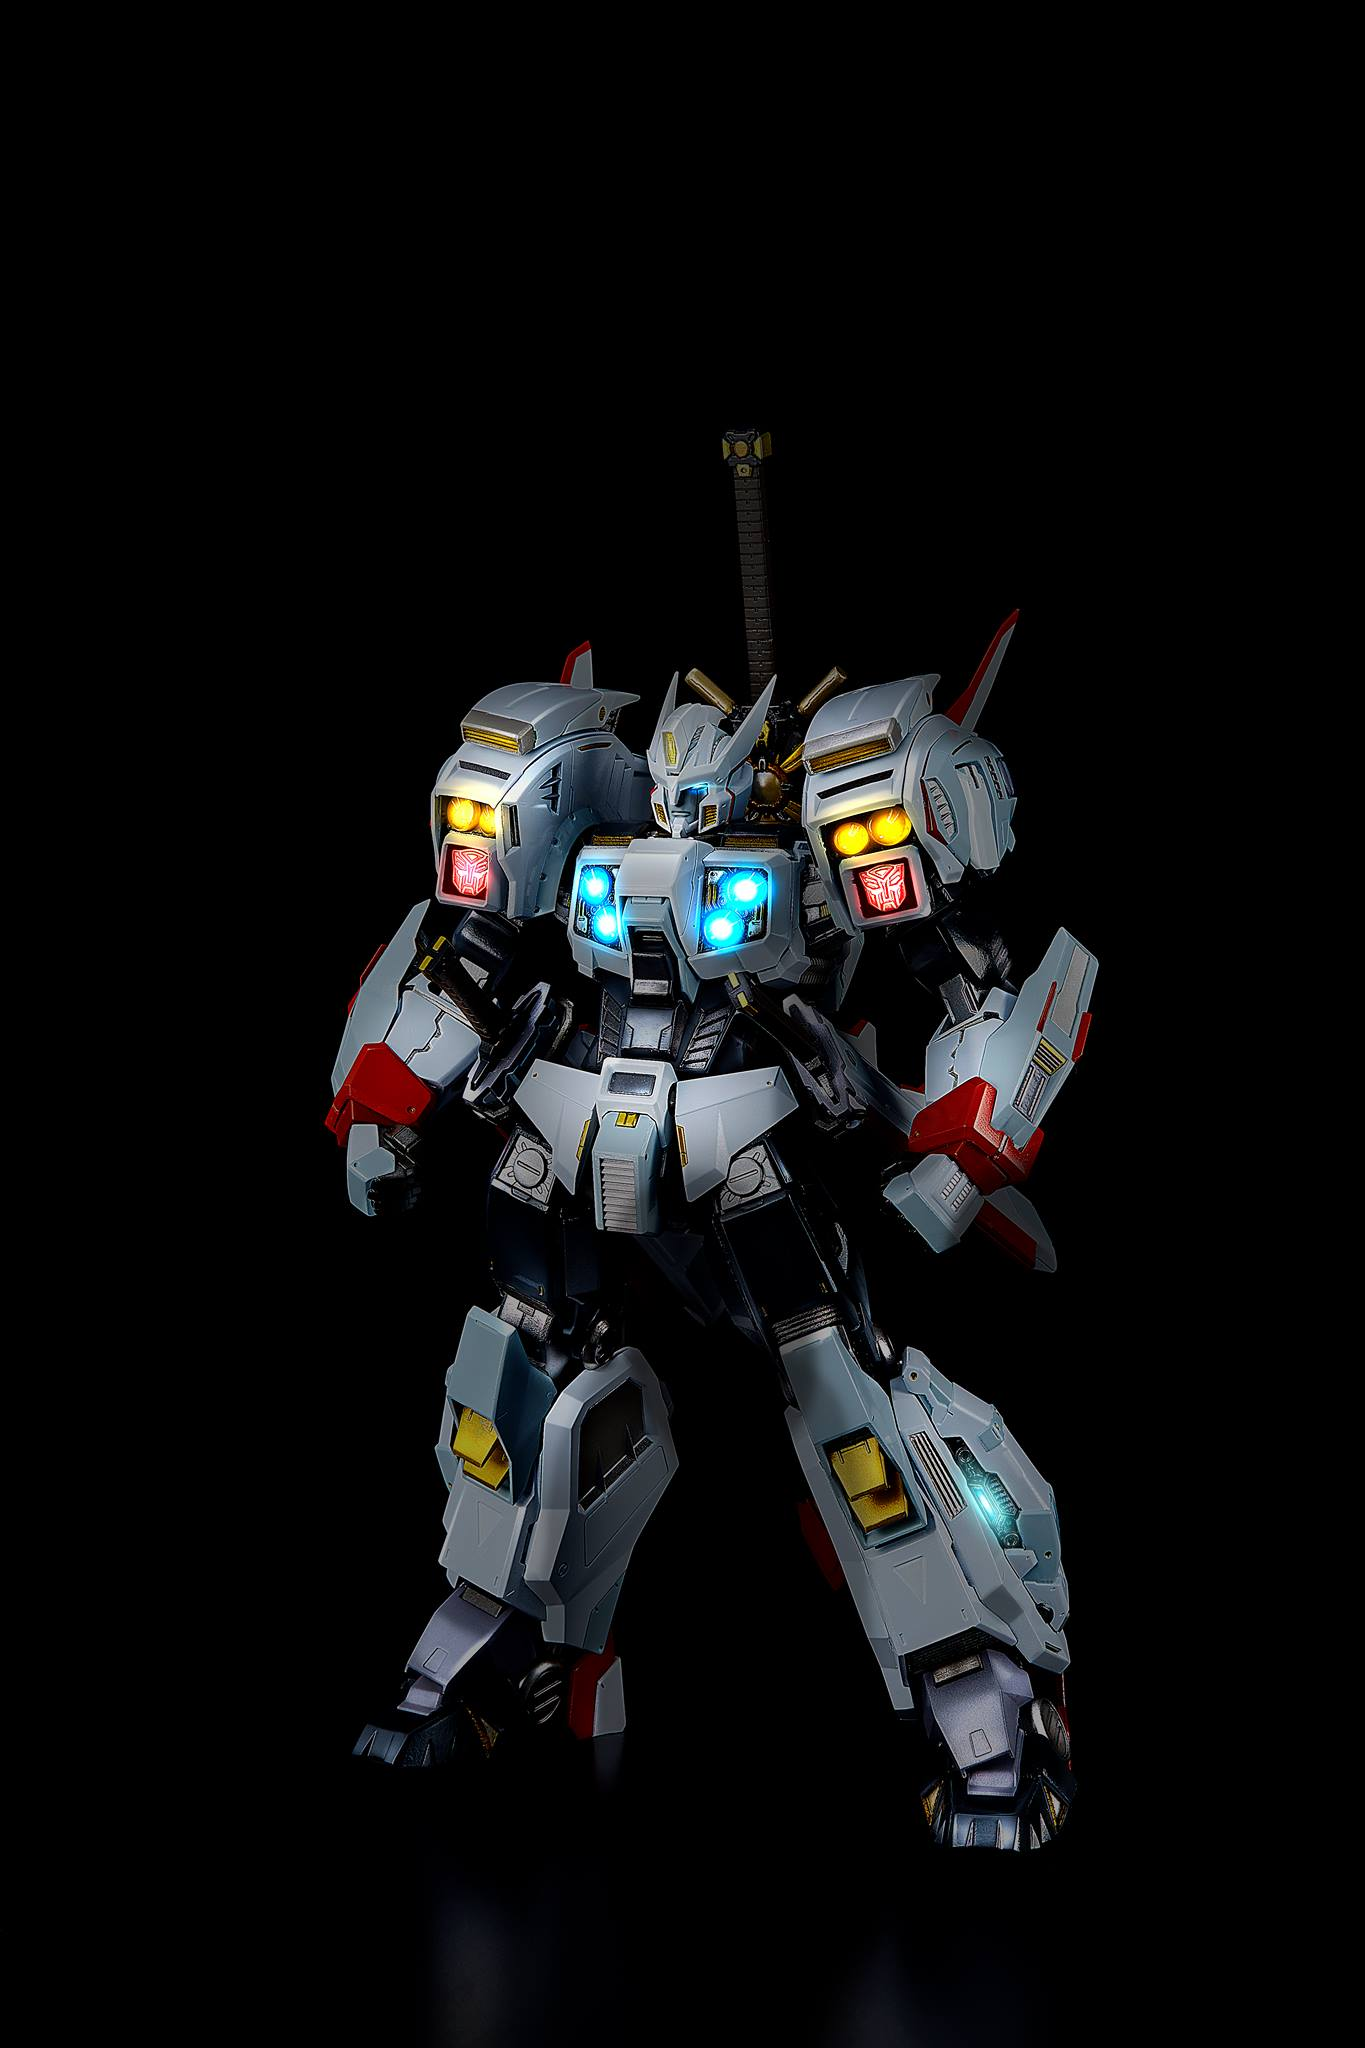 Flame toys drift pre order bonus and other features